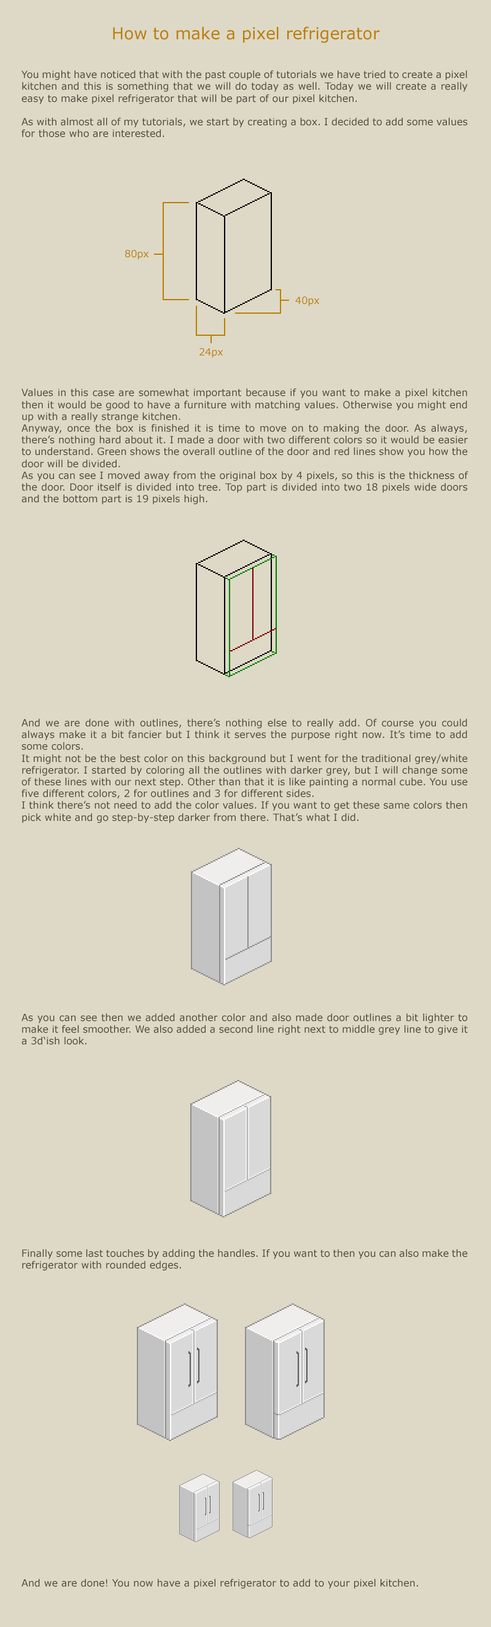 How to make a pixel refrigerator by vanmall